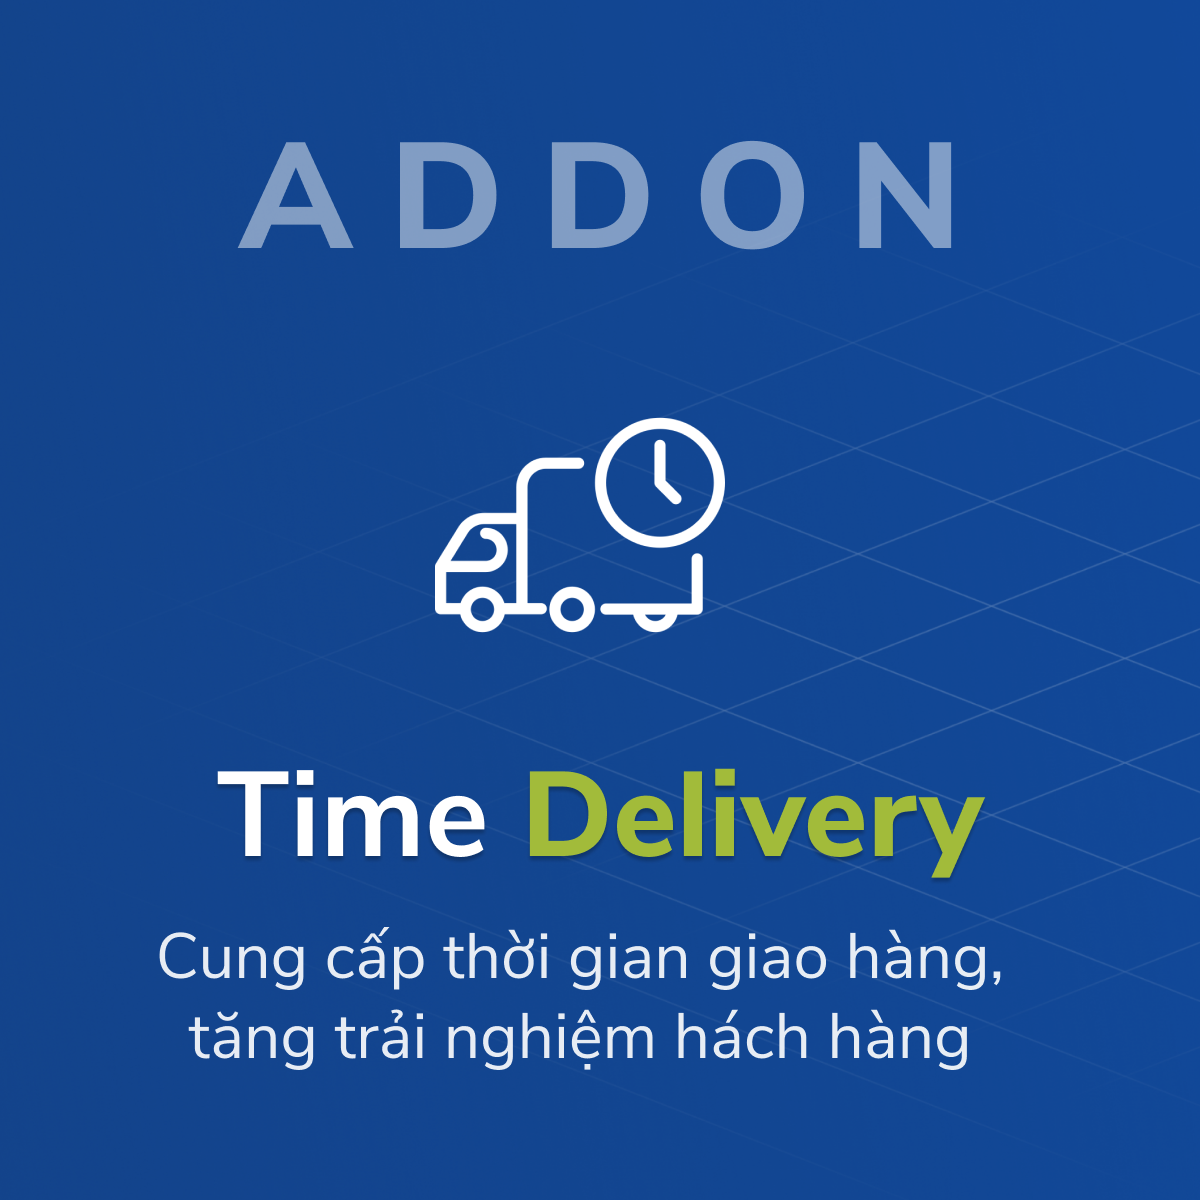 Time delivery